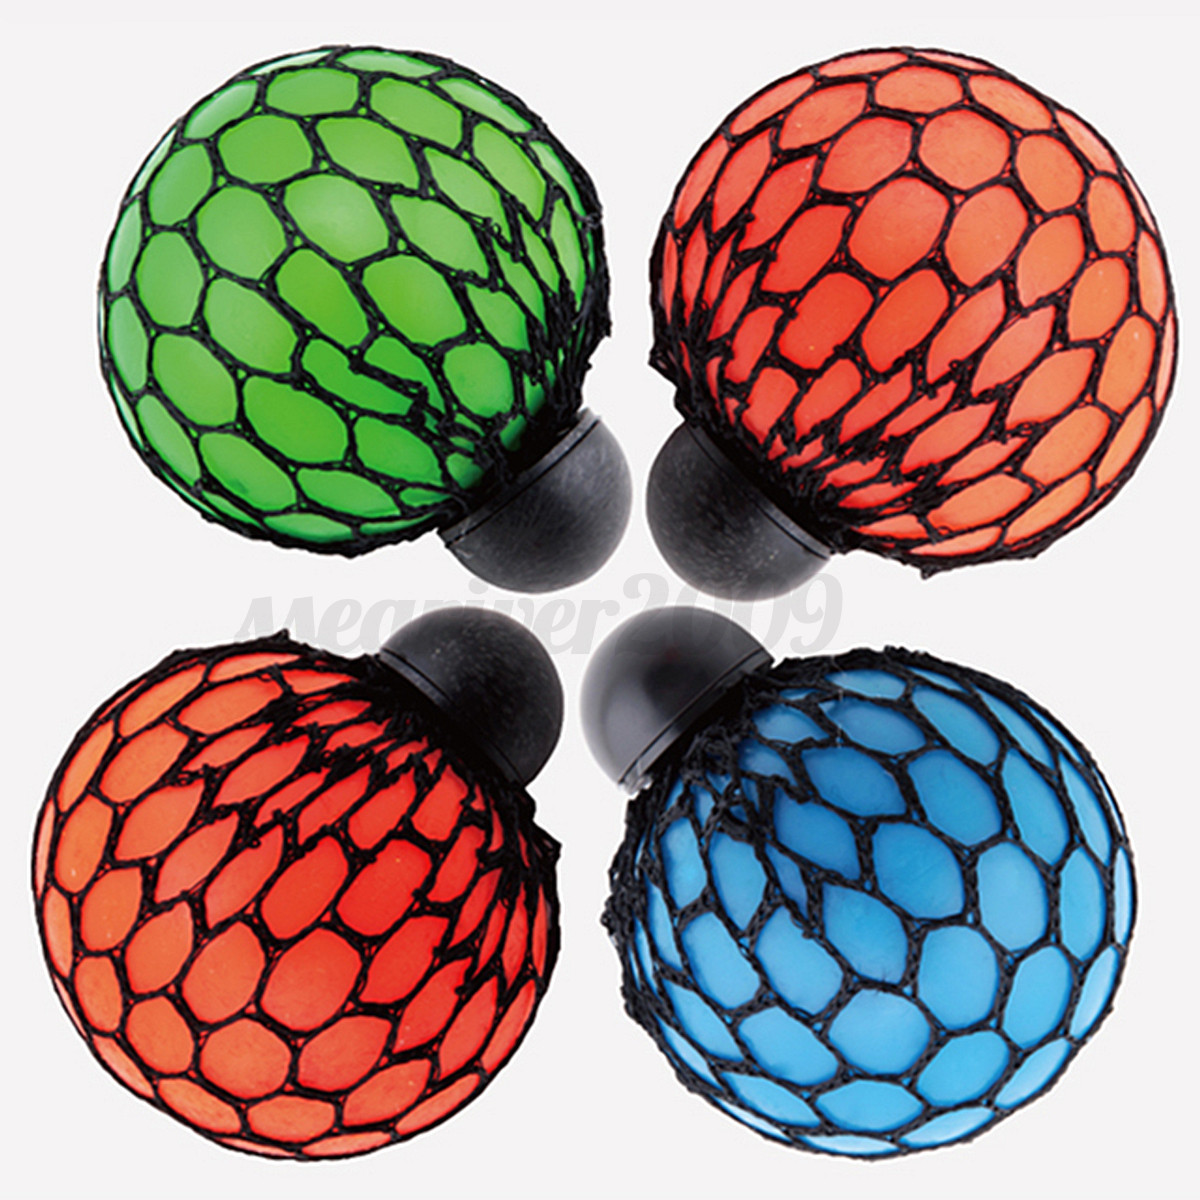 Squishy Squeeze Ball : Novelty Squishy Colored Mesh Stress Ball Squeeze Stressball Party Bag Fun Gift eBay